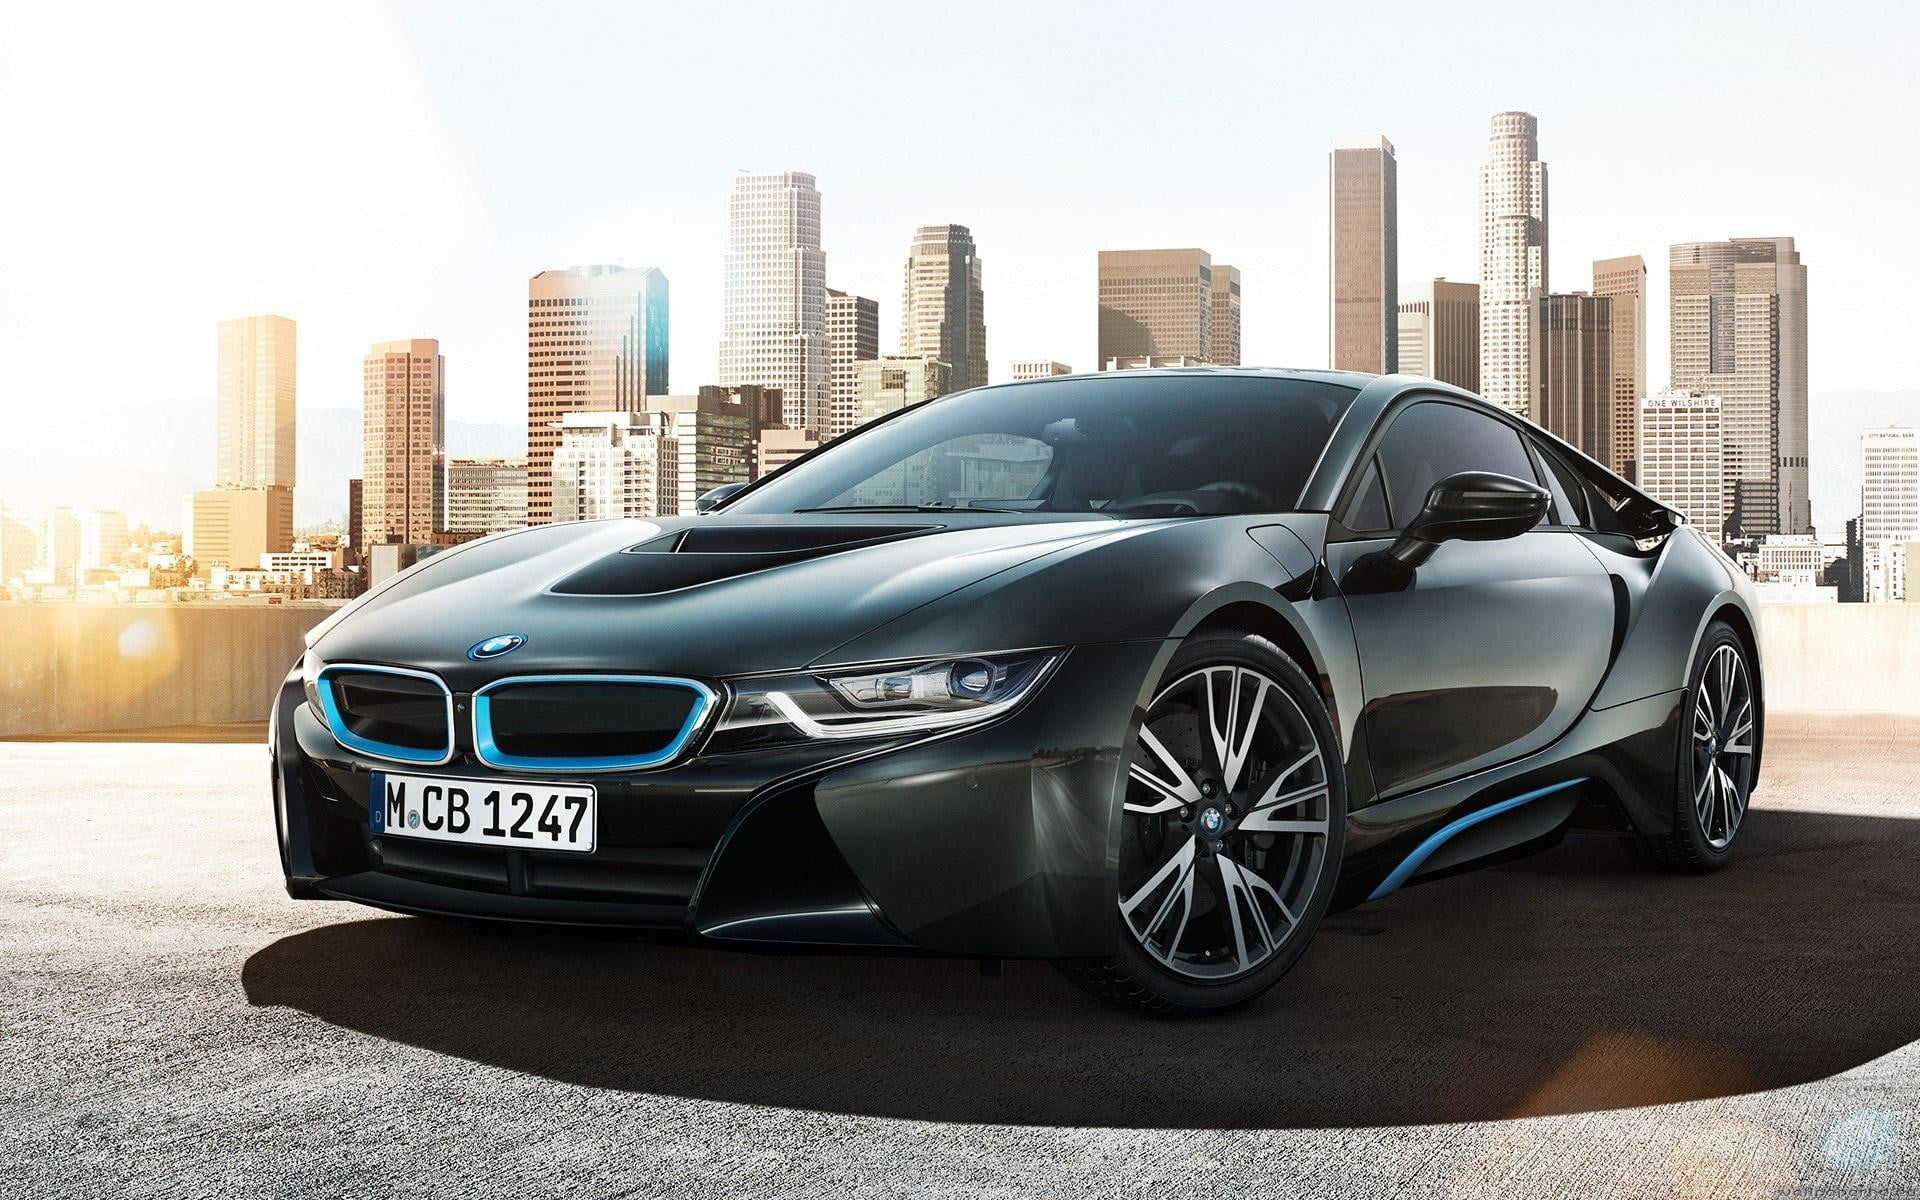 2015 Bmw I8 Three Cylinder In Action Digital Trends